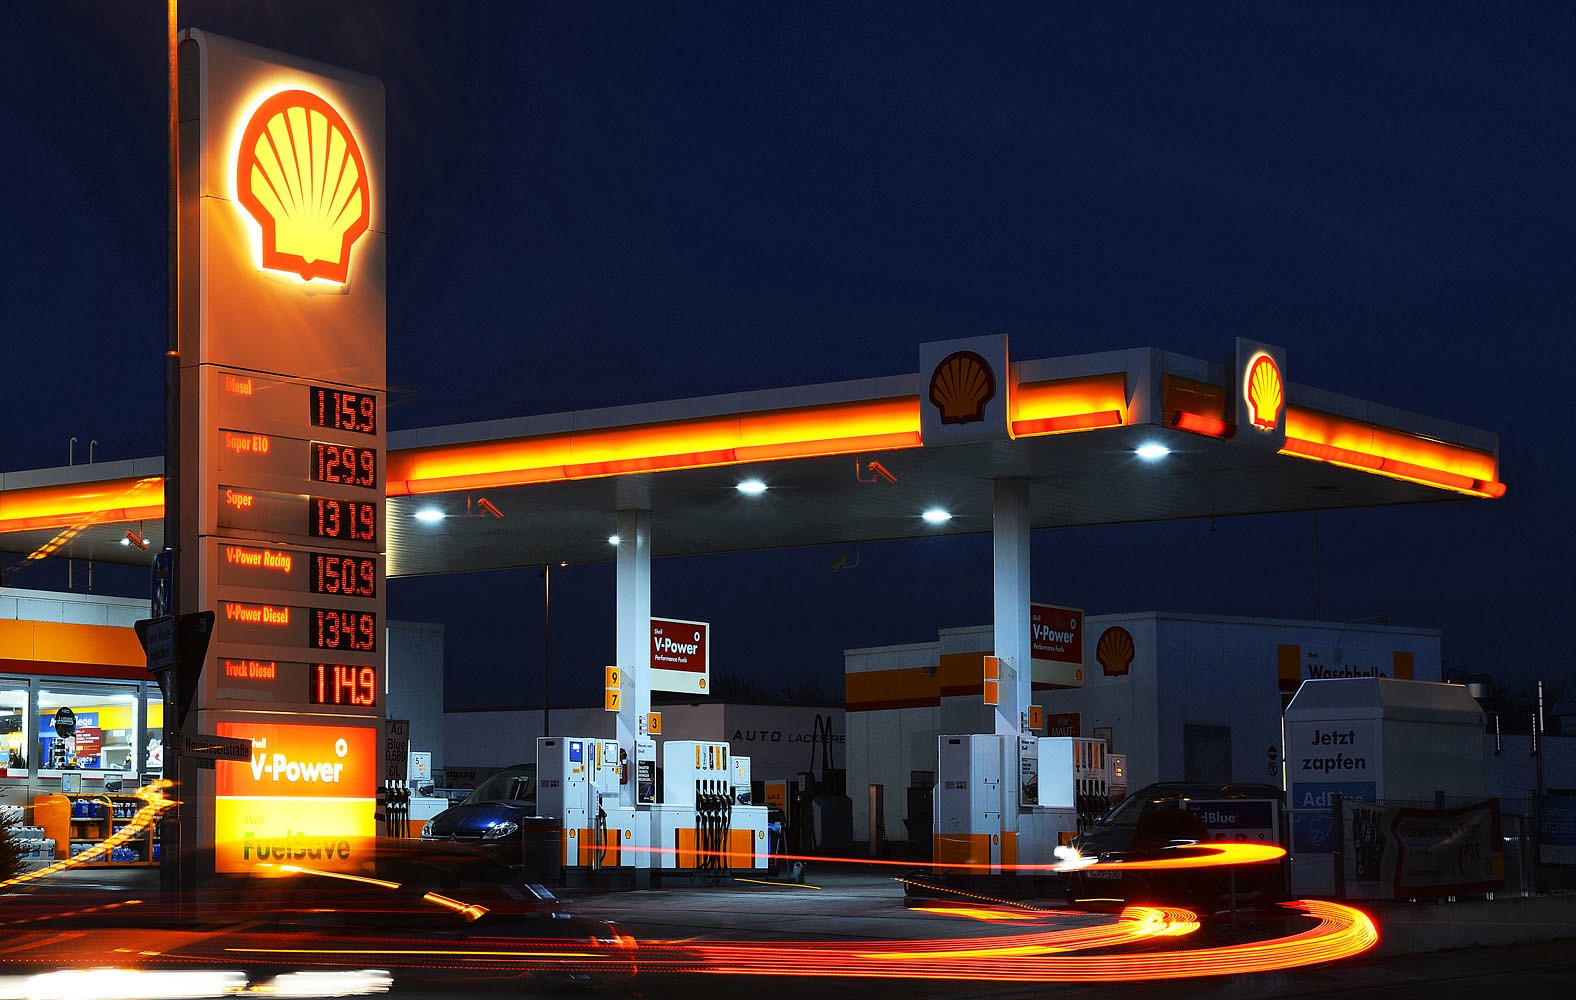 Shell's plan to become net-zero emissions